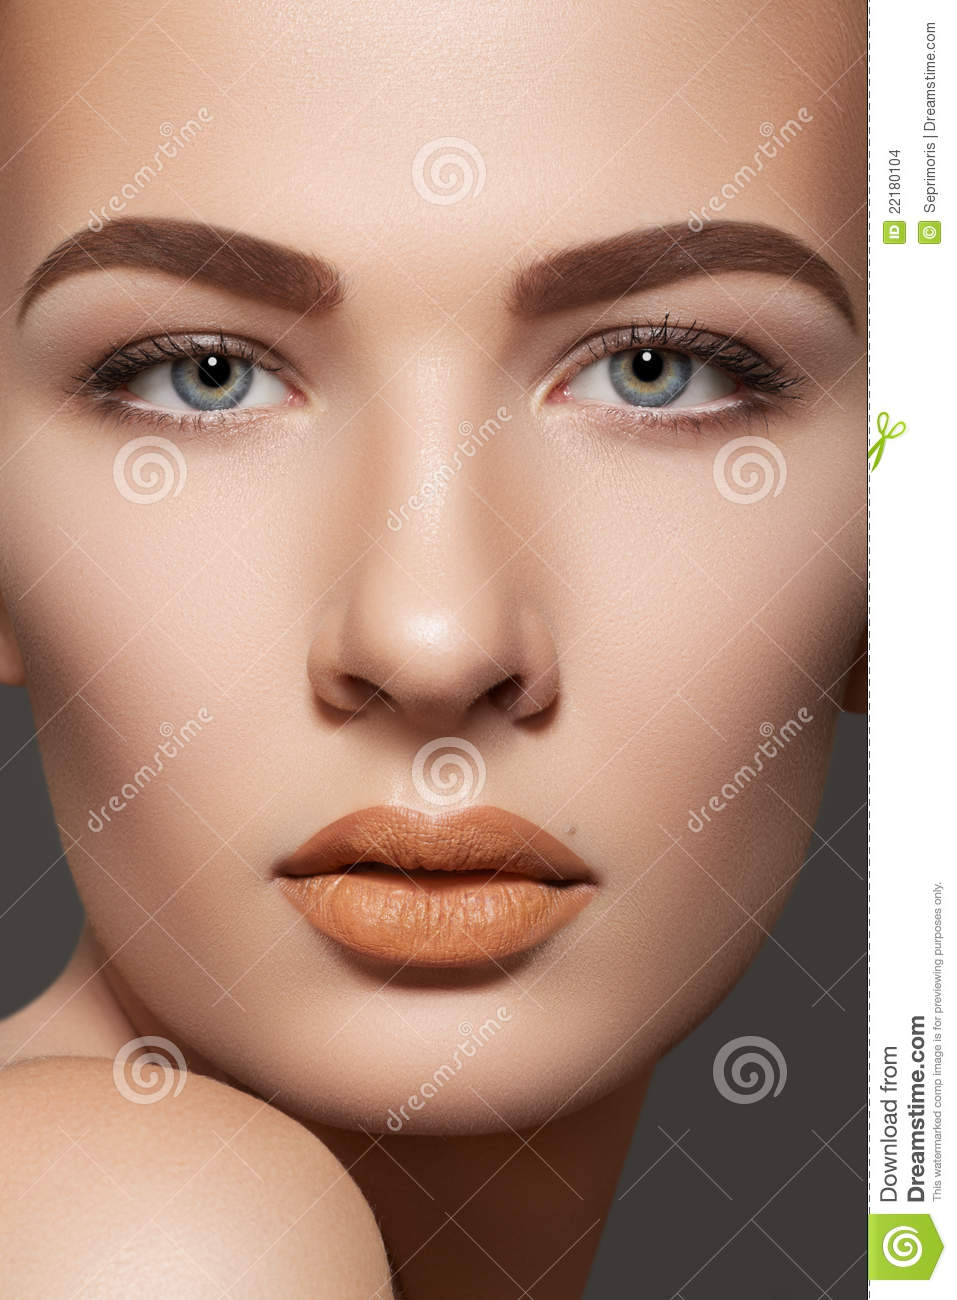 Beauty Model With Natural Eyebrows  U0026 Lips Make